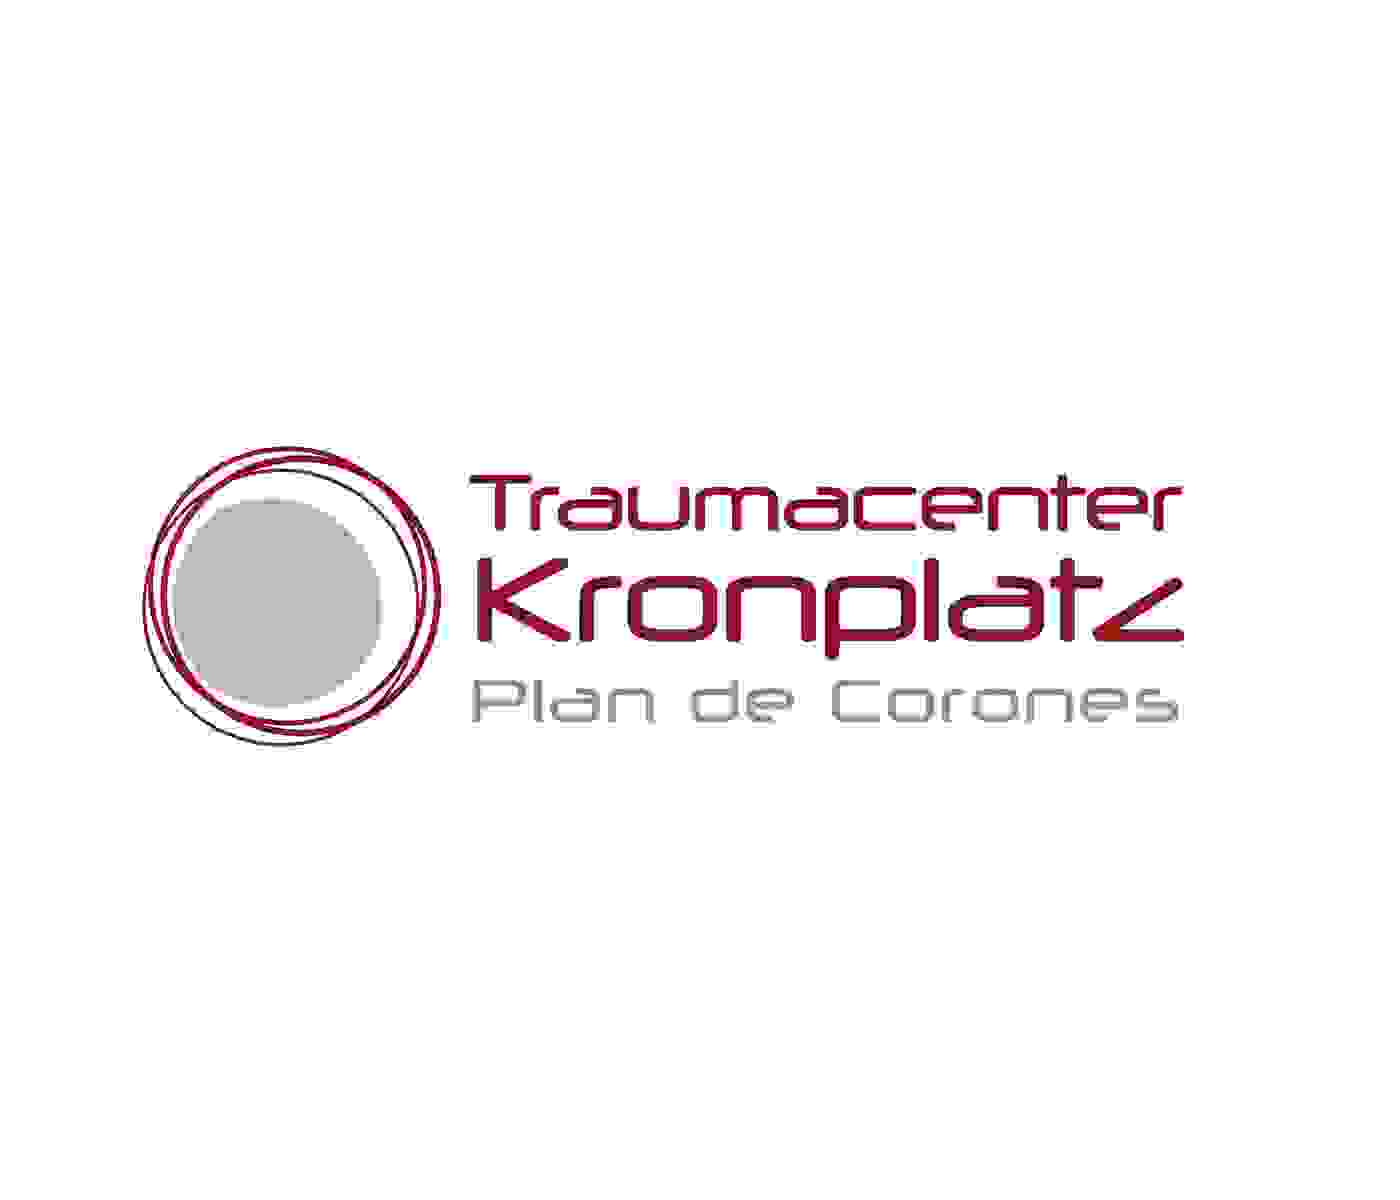 Traumacenter Kronplatz